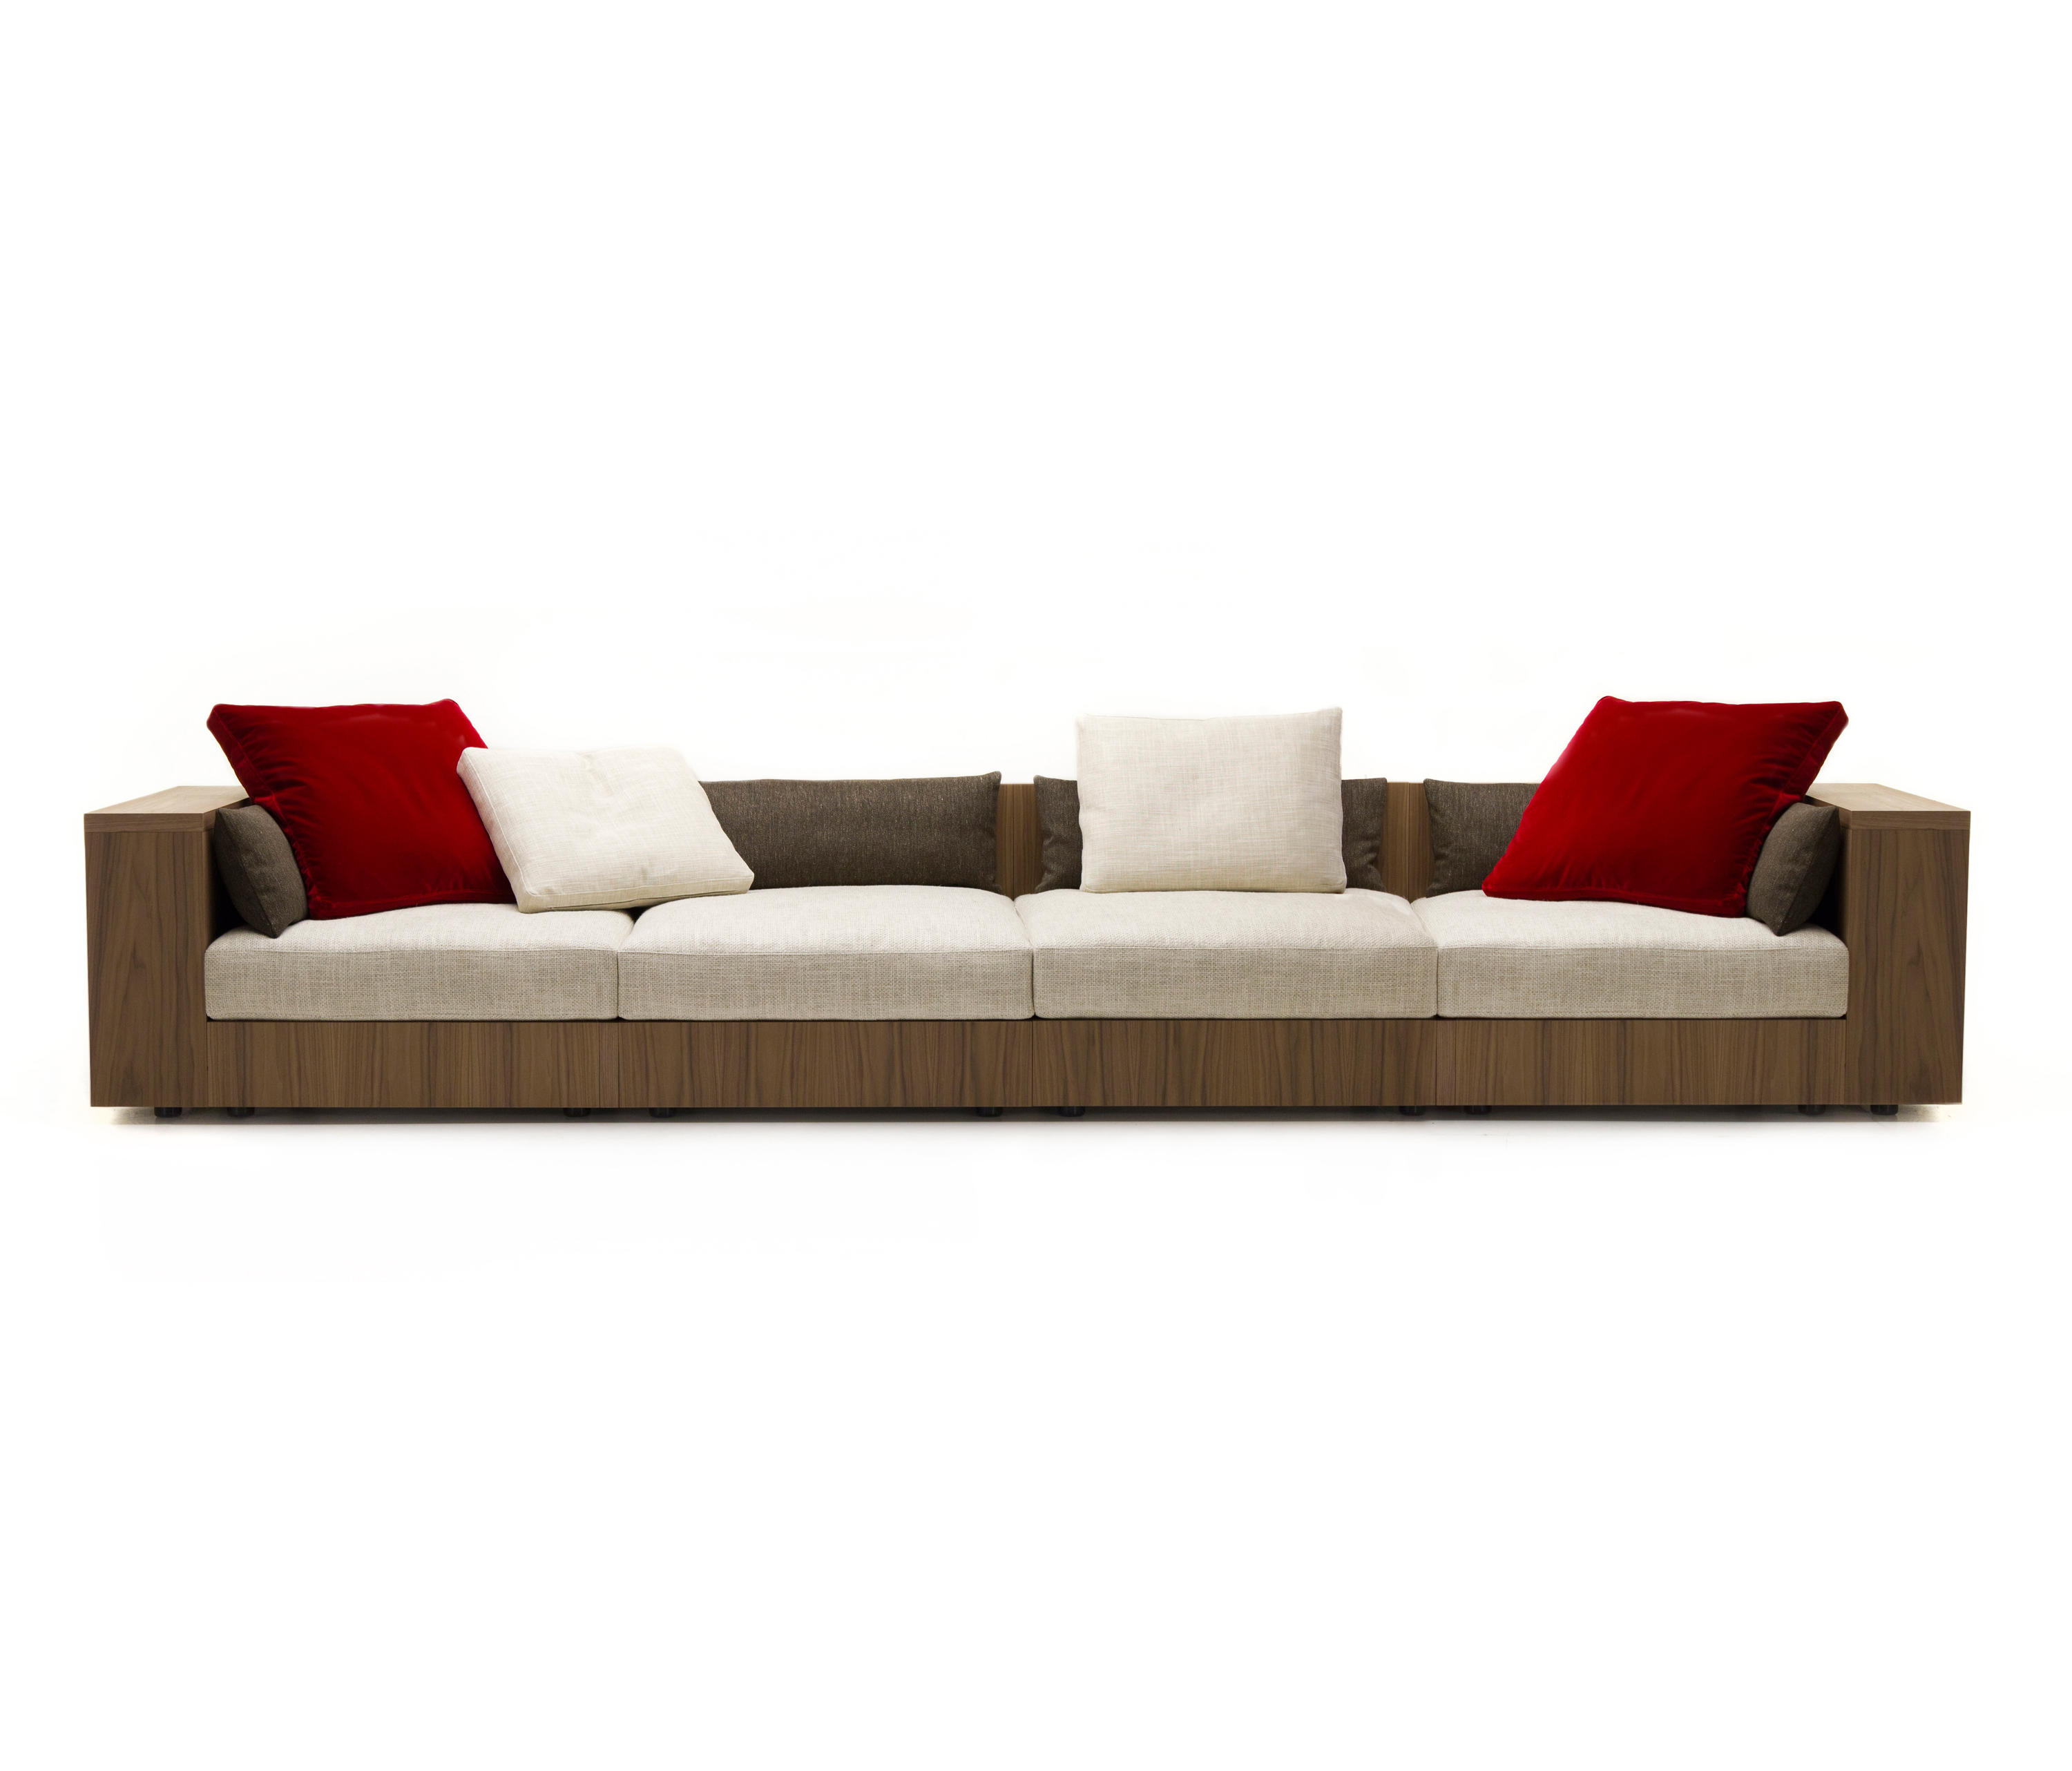 sofa 4 seater chesterfield leather pottery barn so wood lounge sofas from mussi